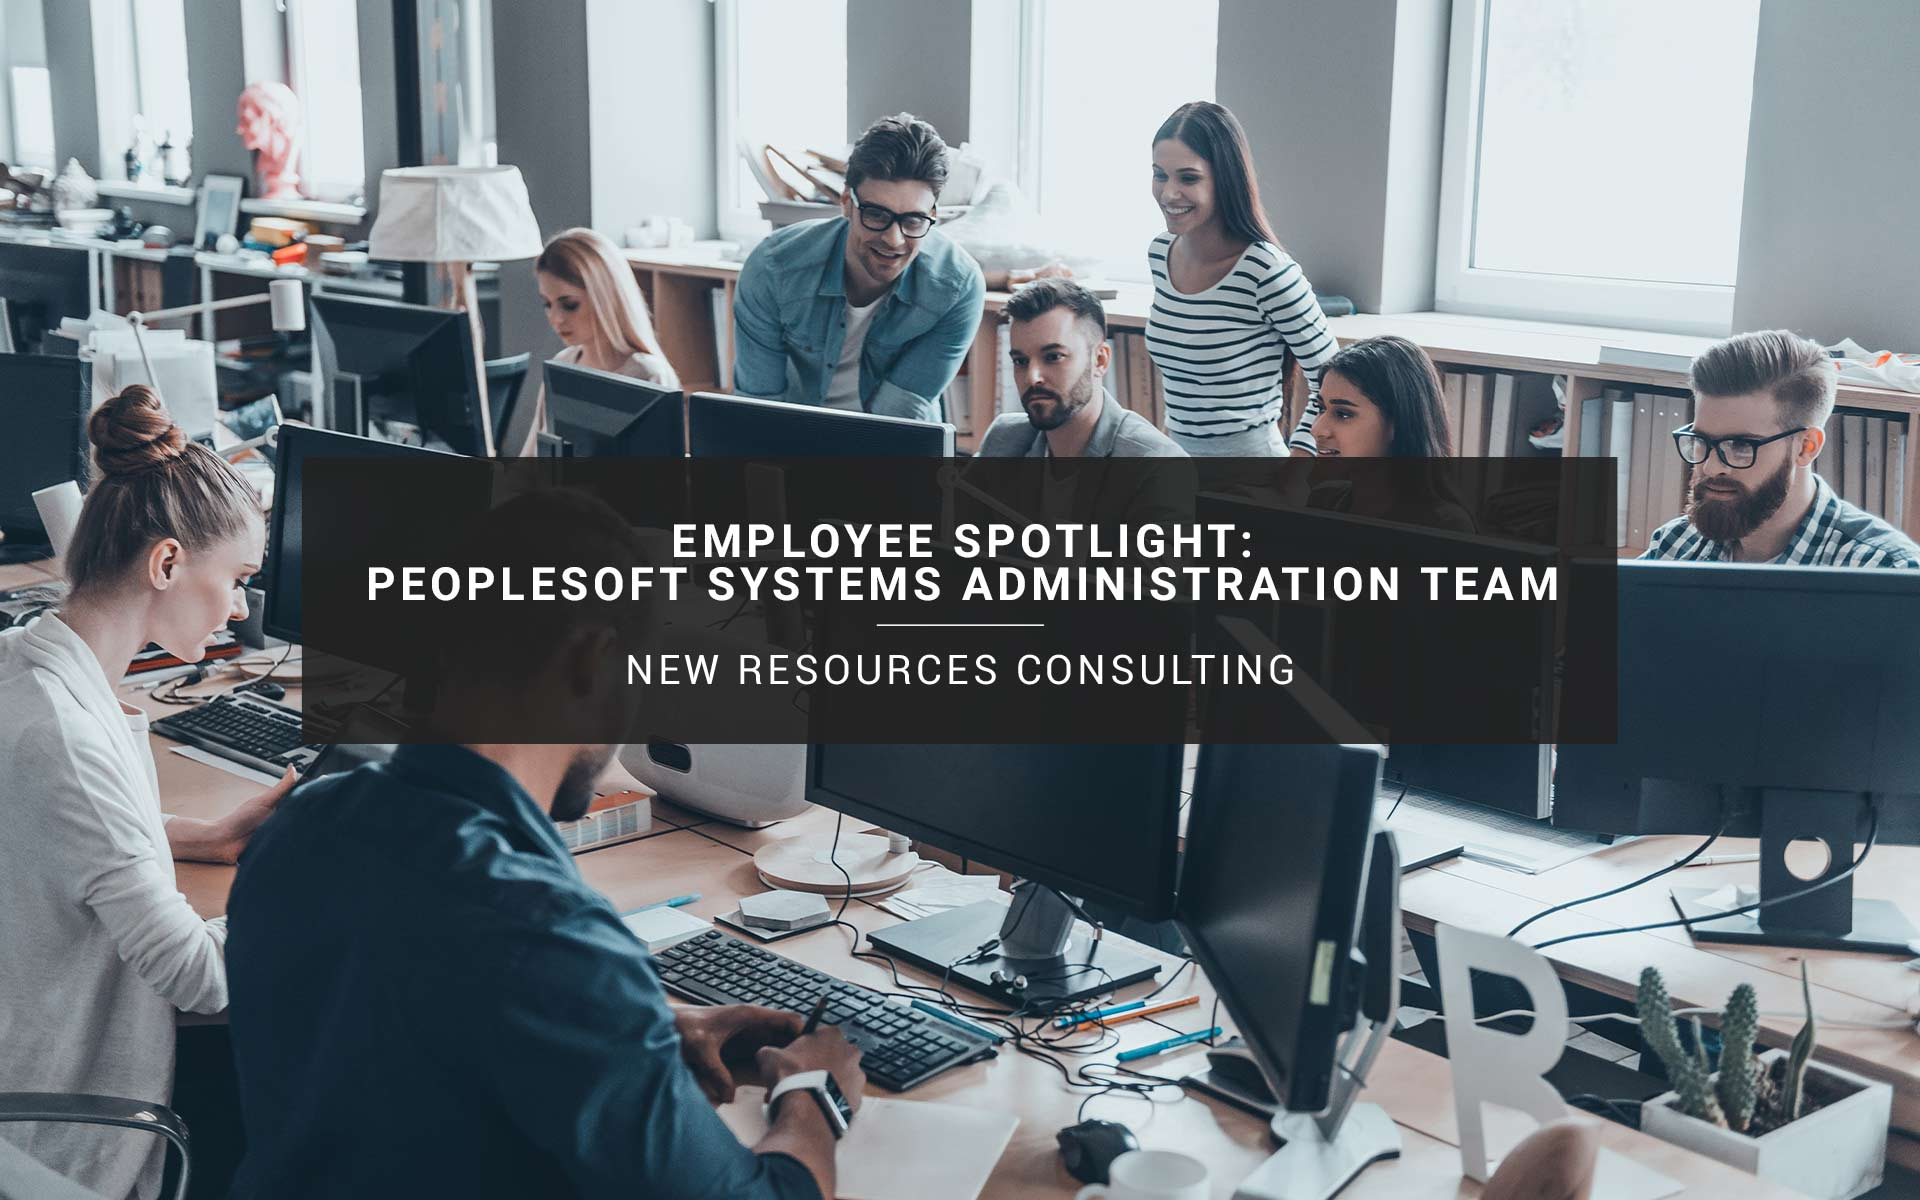 PeopleSoft Systems Administration Team | New Resources Consulting